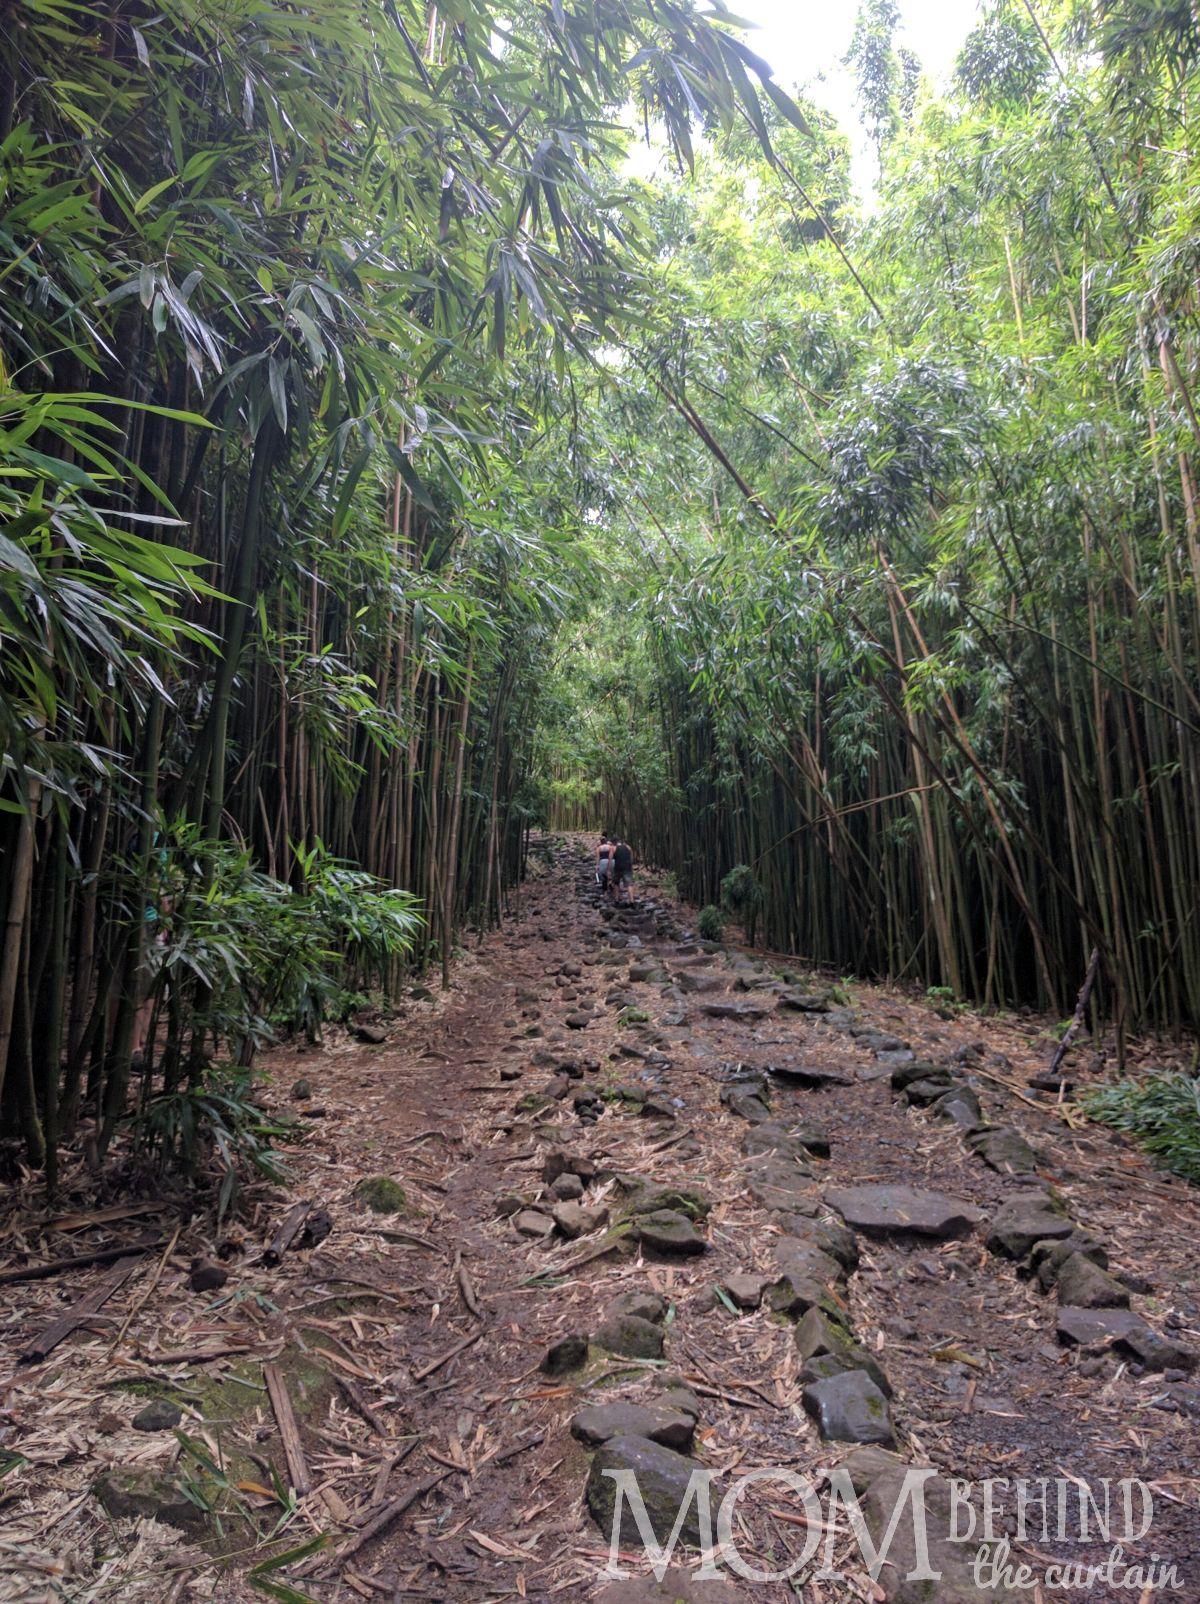 Rocky Pipiwai Trail in the bamboo Forest, Maui.